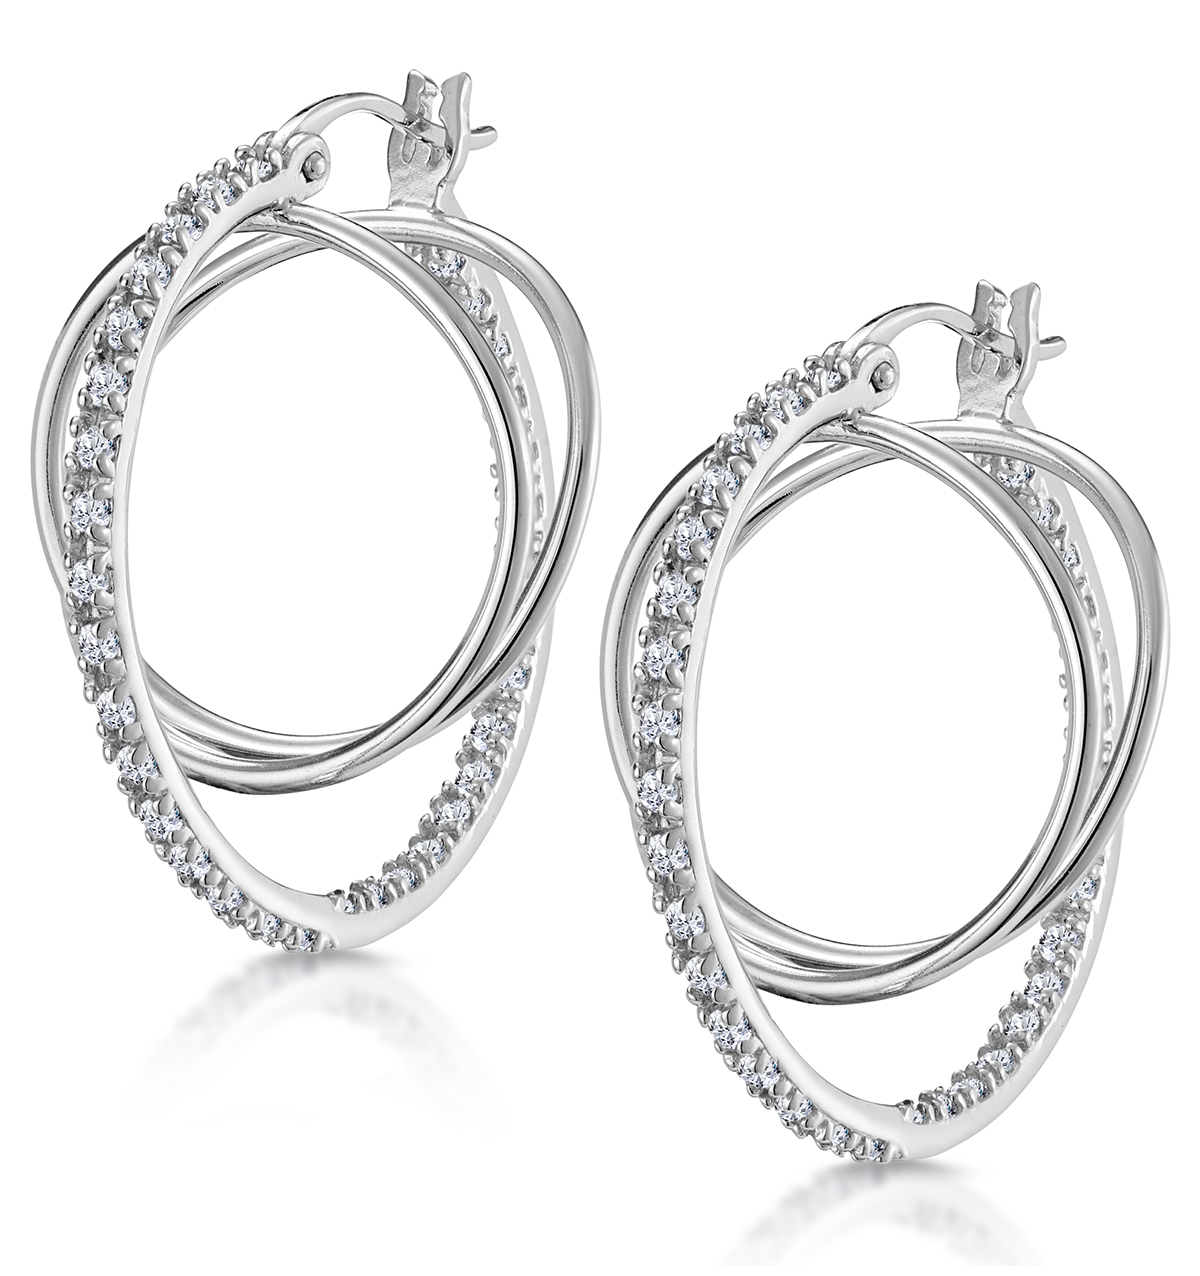 SILVER INSIDE-OUT HOOP EARRINGS WITH WHITE TOPAZ - TESORO COLLECTION